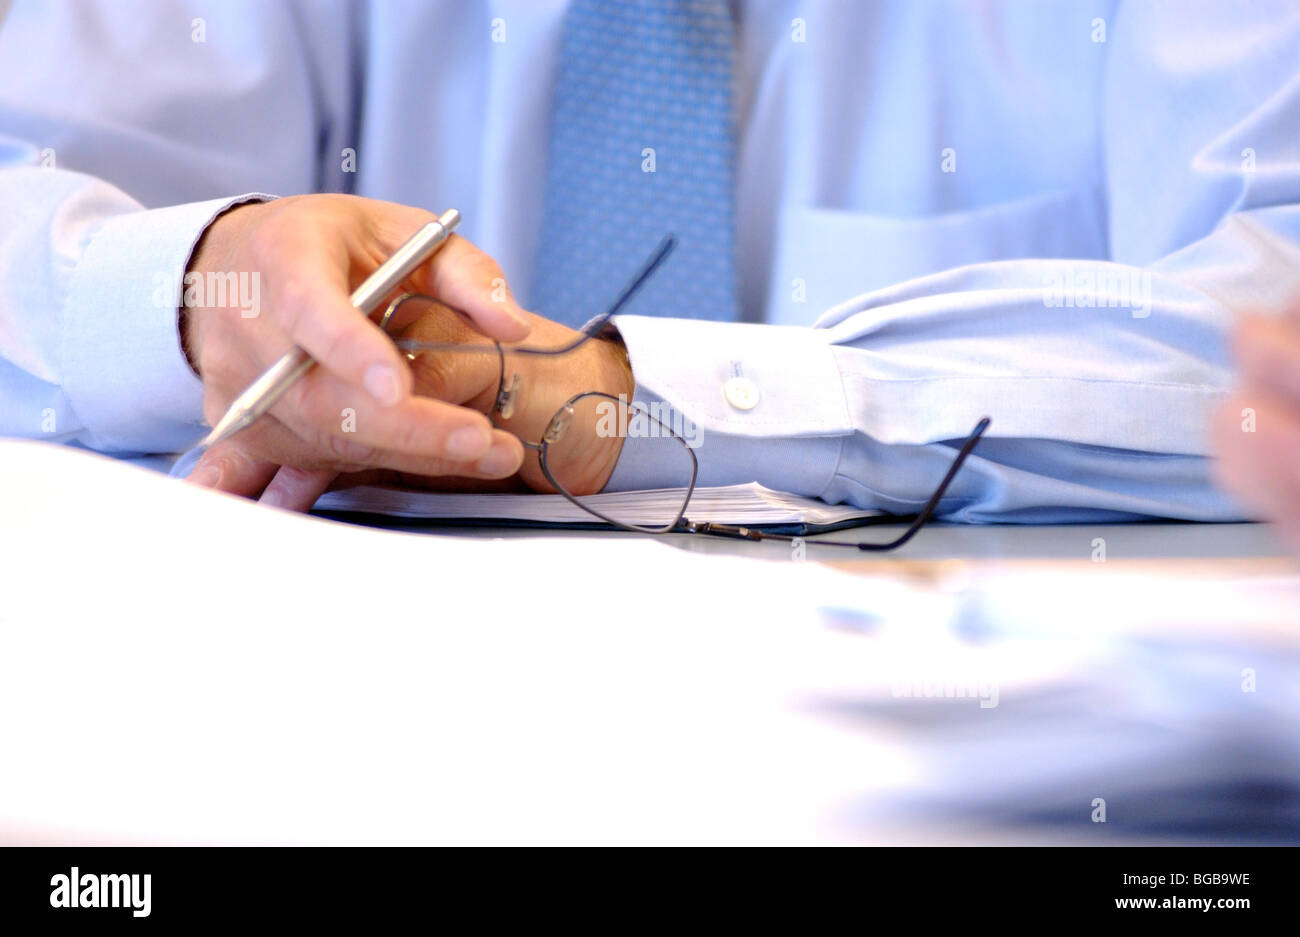 Royalty free photograph of business meeting with papers and hands in focus London UK Stock Photo